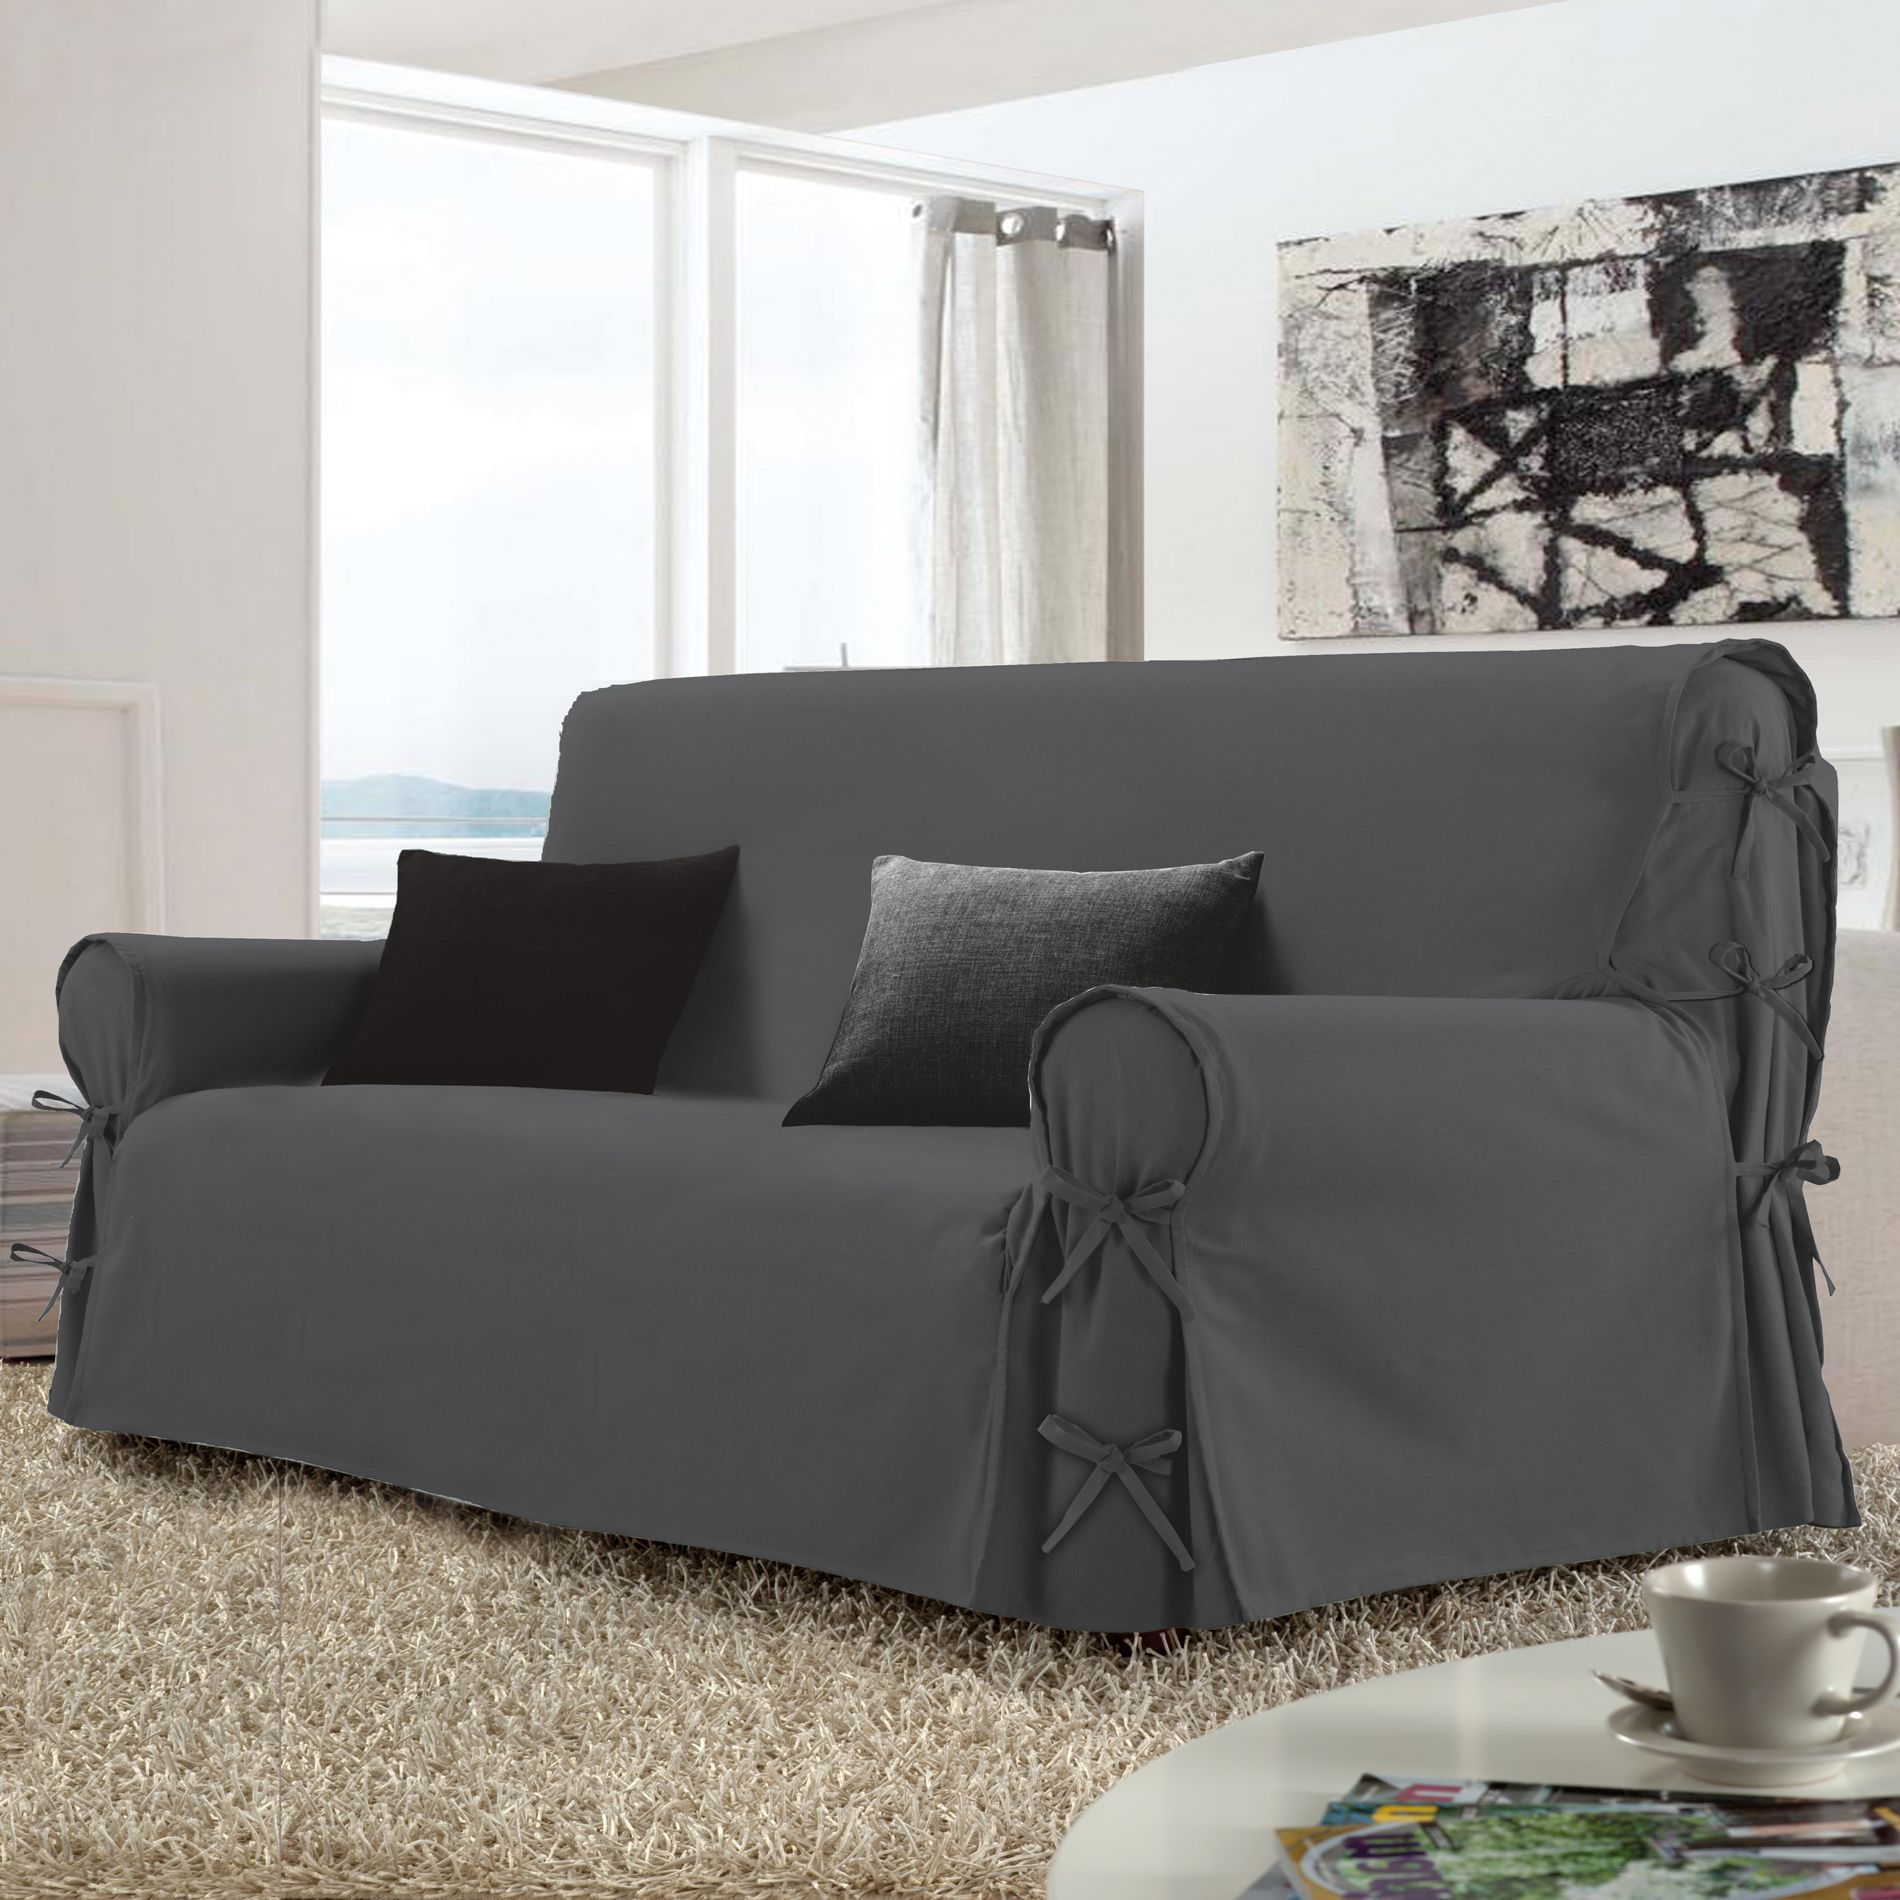 housse de canap 2 places stella gris anthracite housse de canap eminza. Black Bedroom Furniture Sets. Home Design Ideas